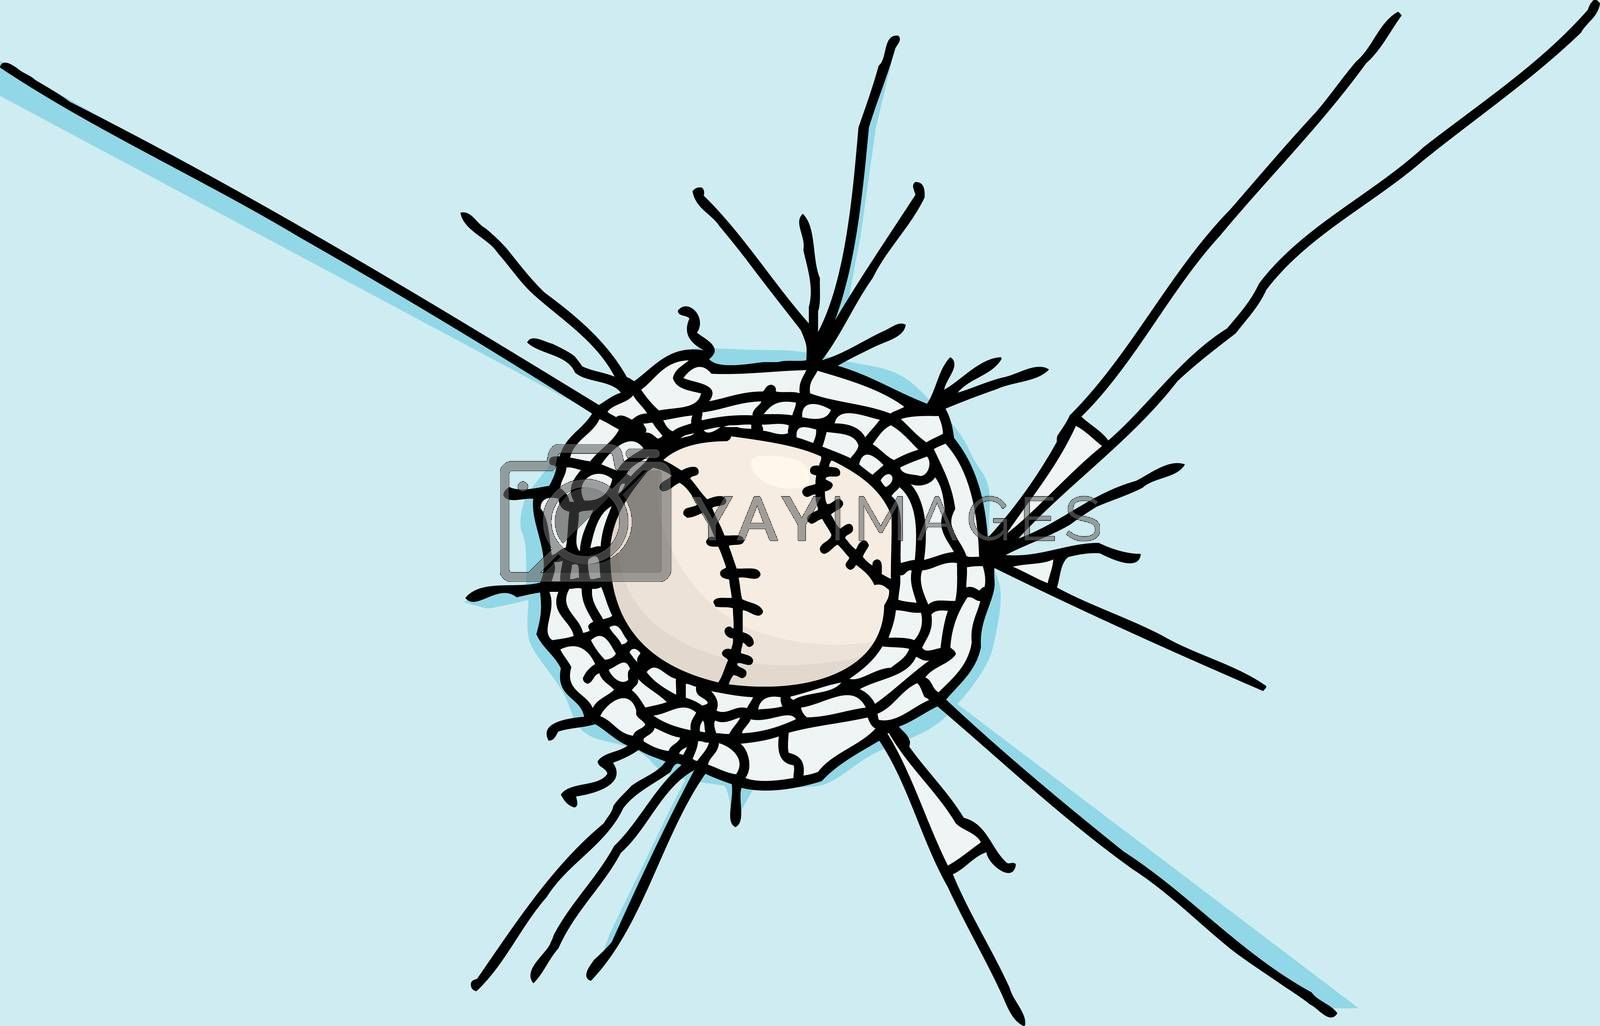 Baseball Stuck in Glass by TheBlackRhino